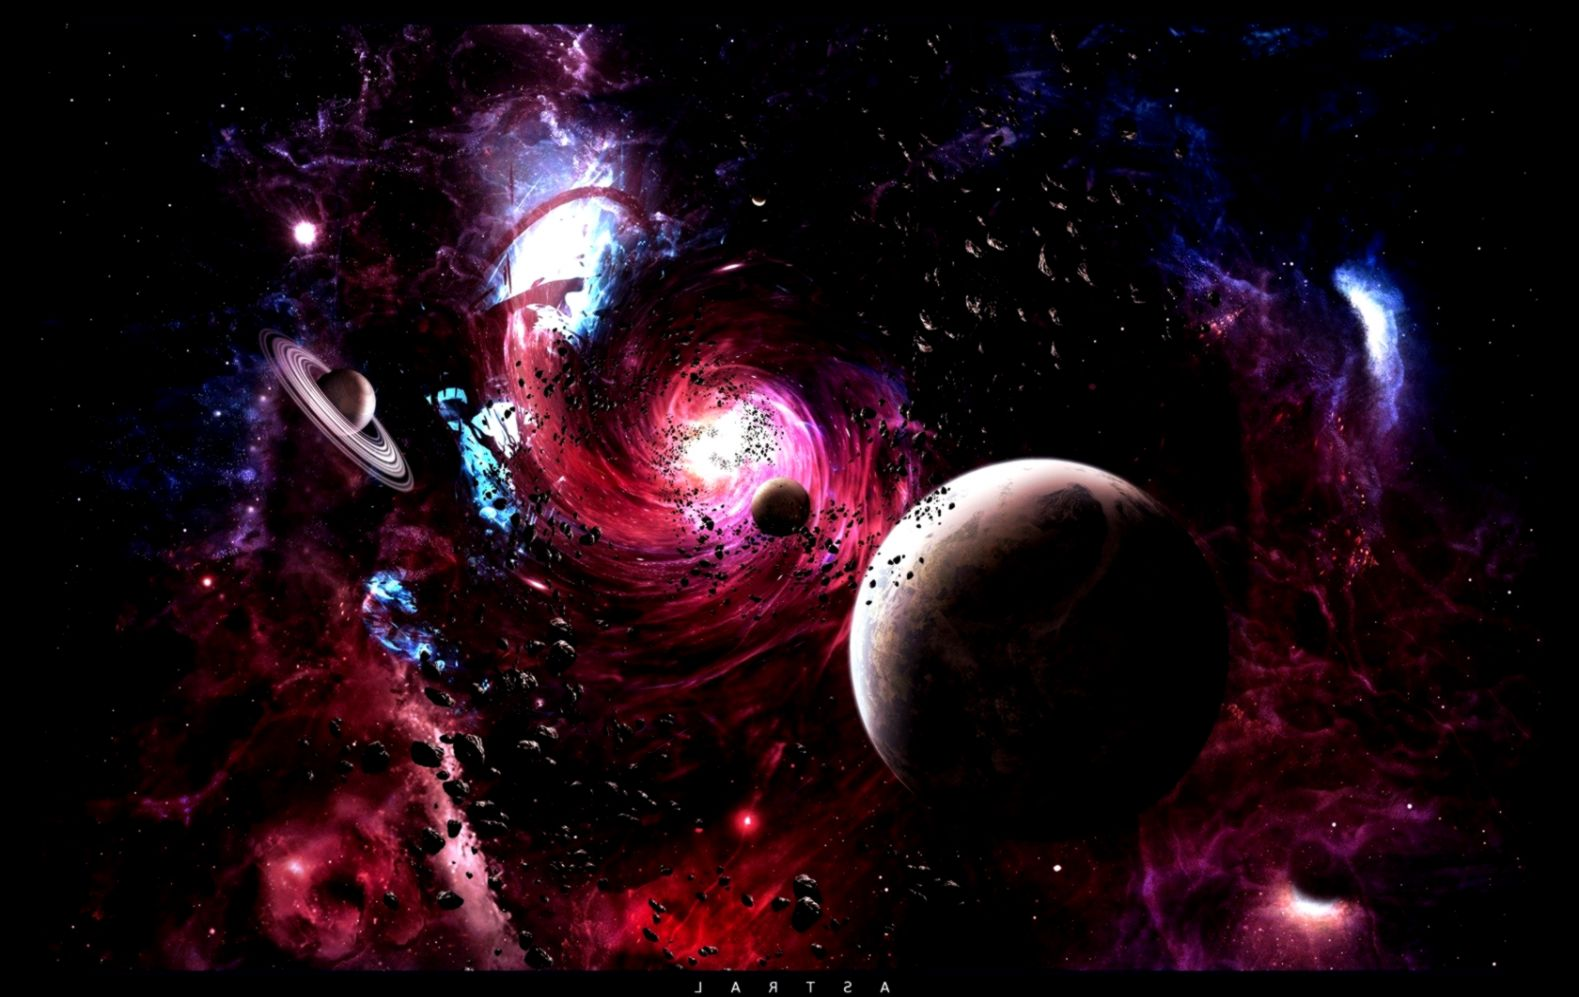 Space Galaxies Planets Hd Wallpapers Wallpapers Quality